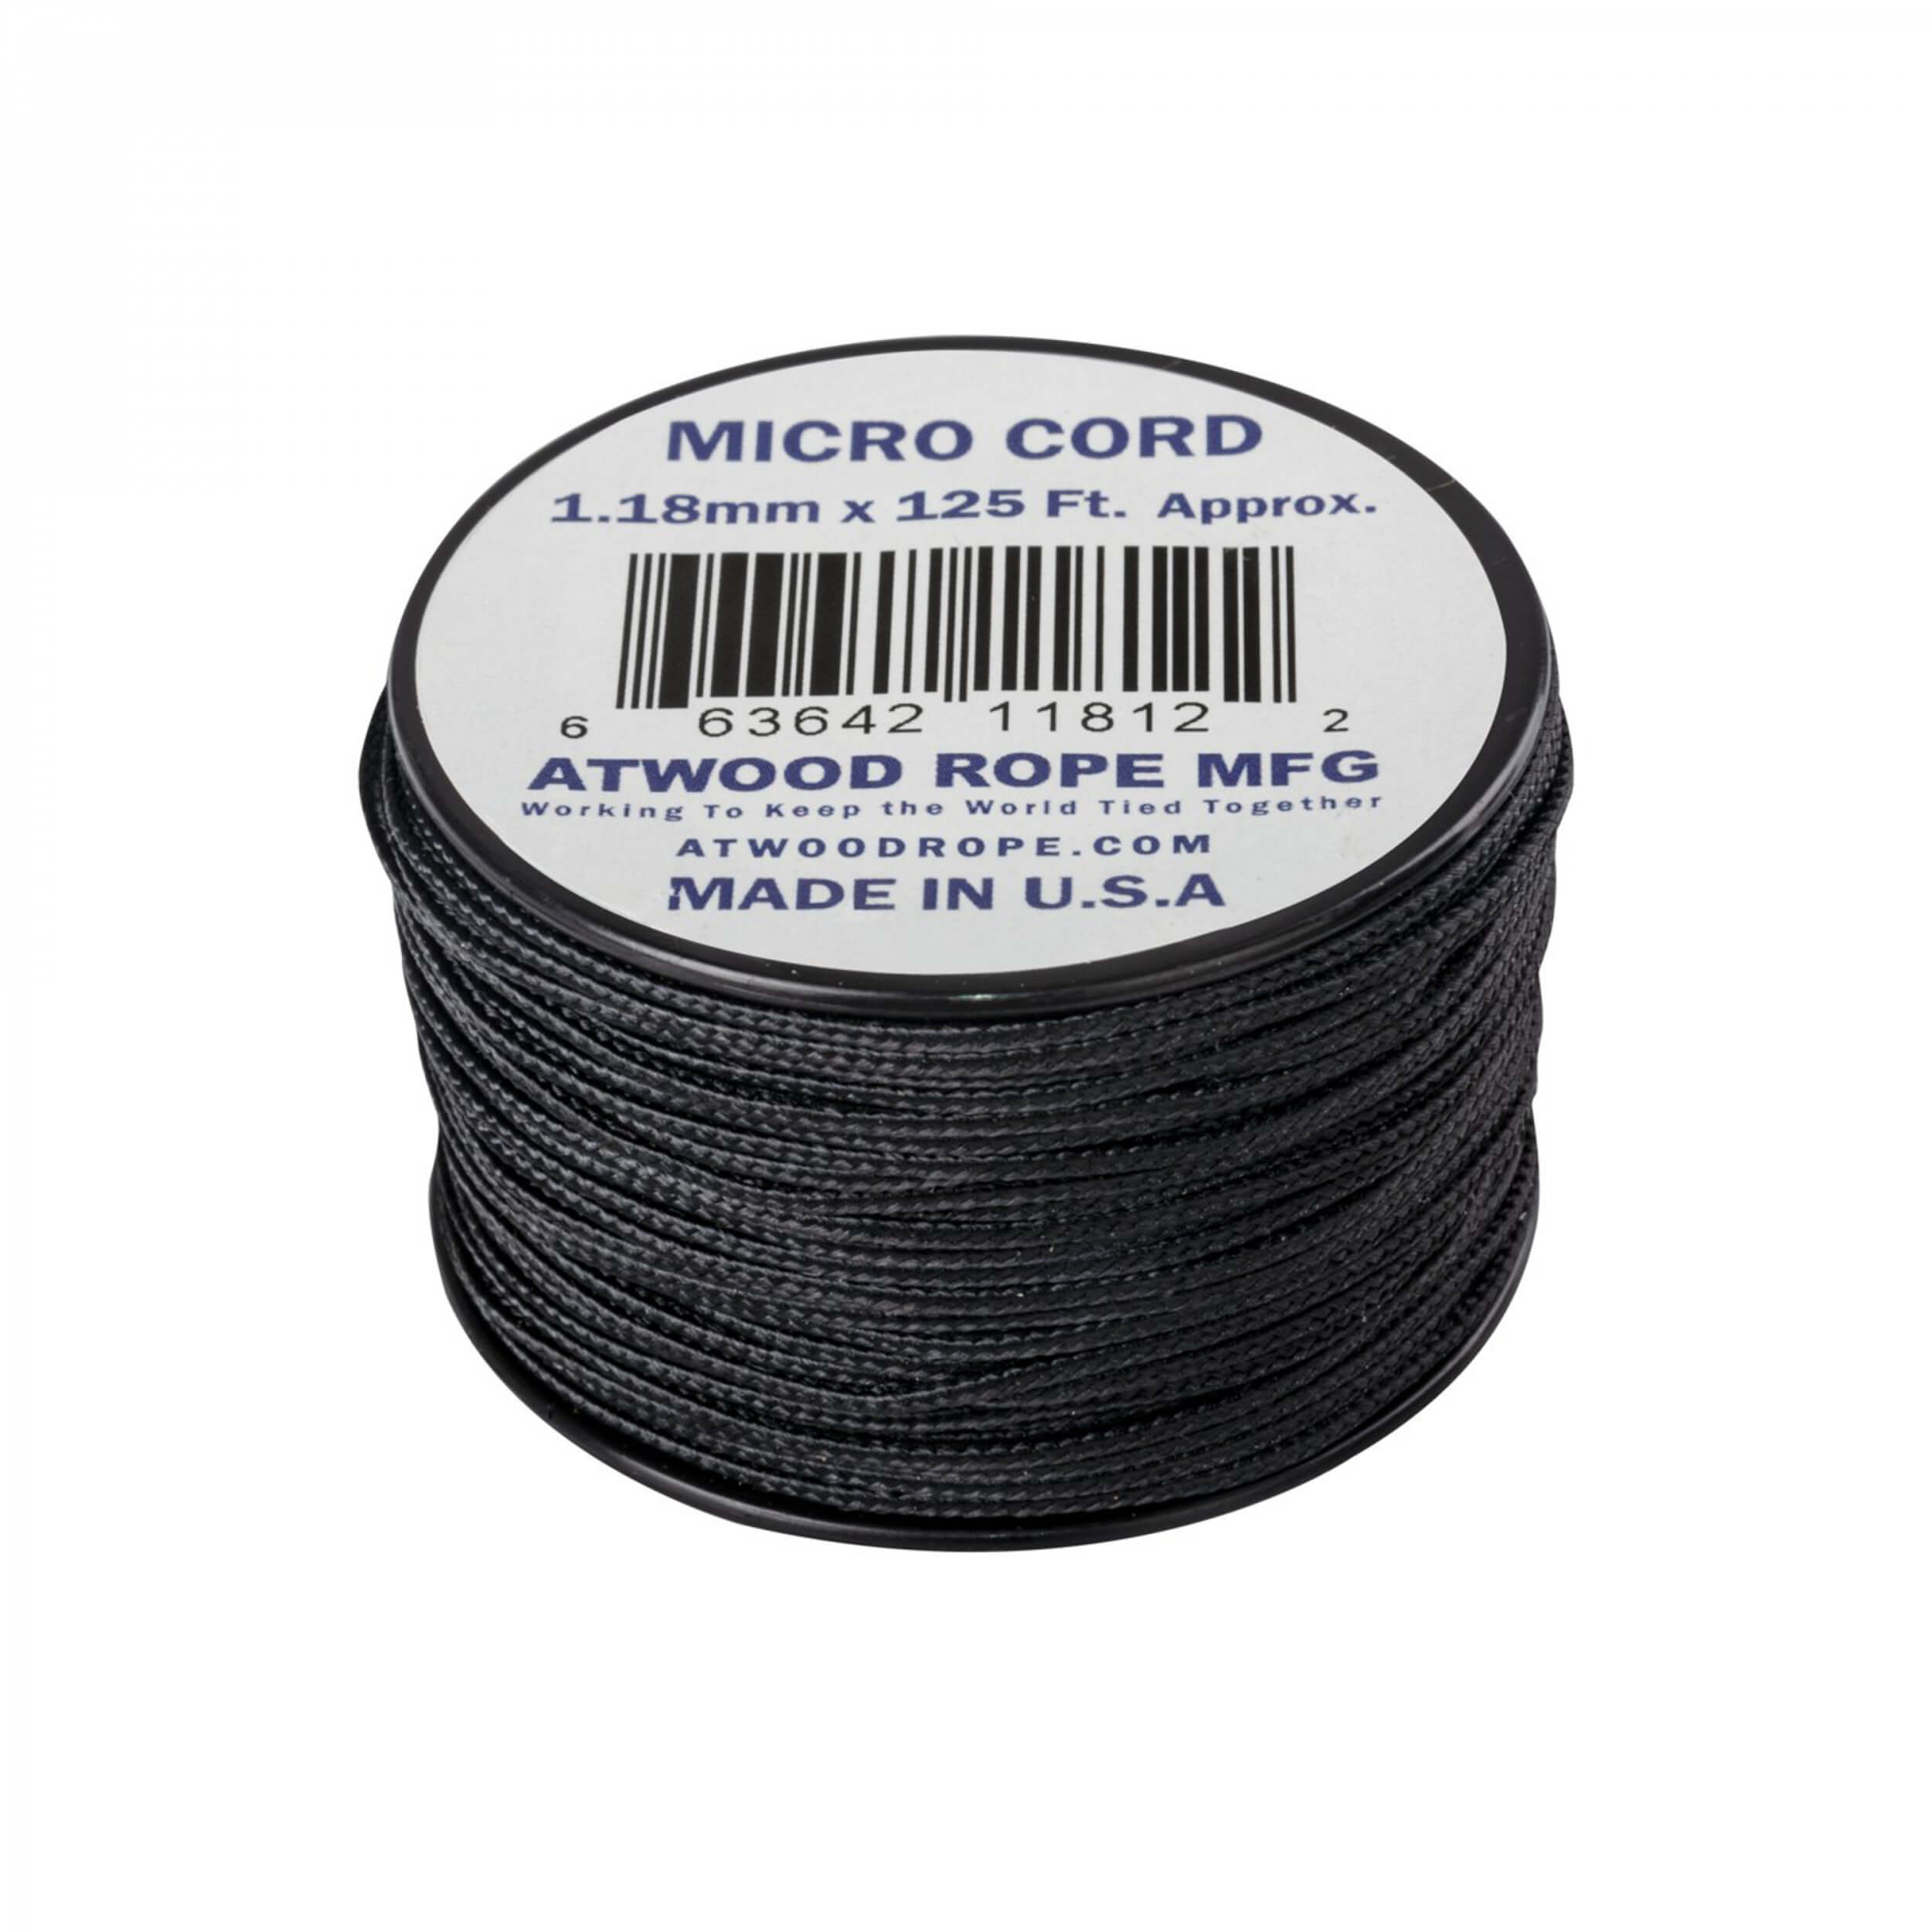 Helikon-Tex Micro Cord (125 FT) black